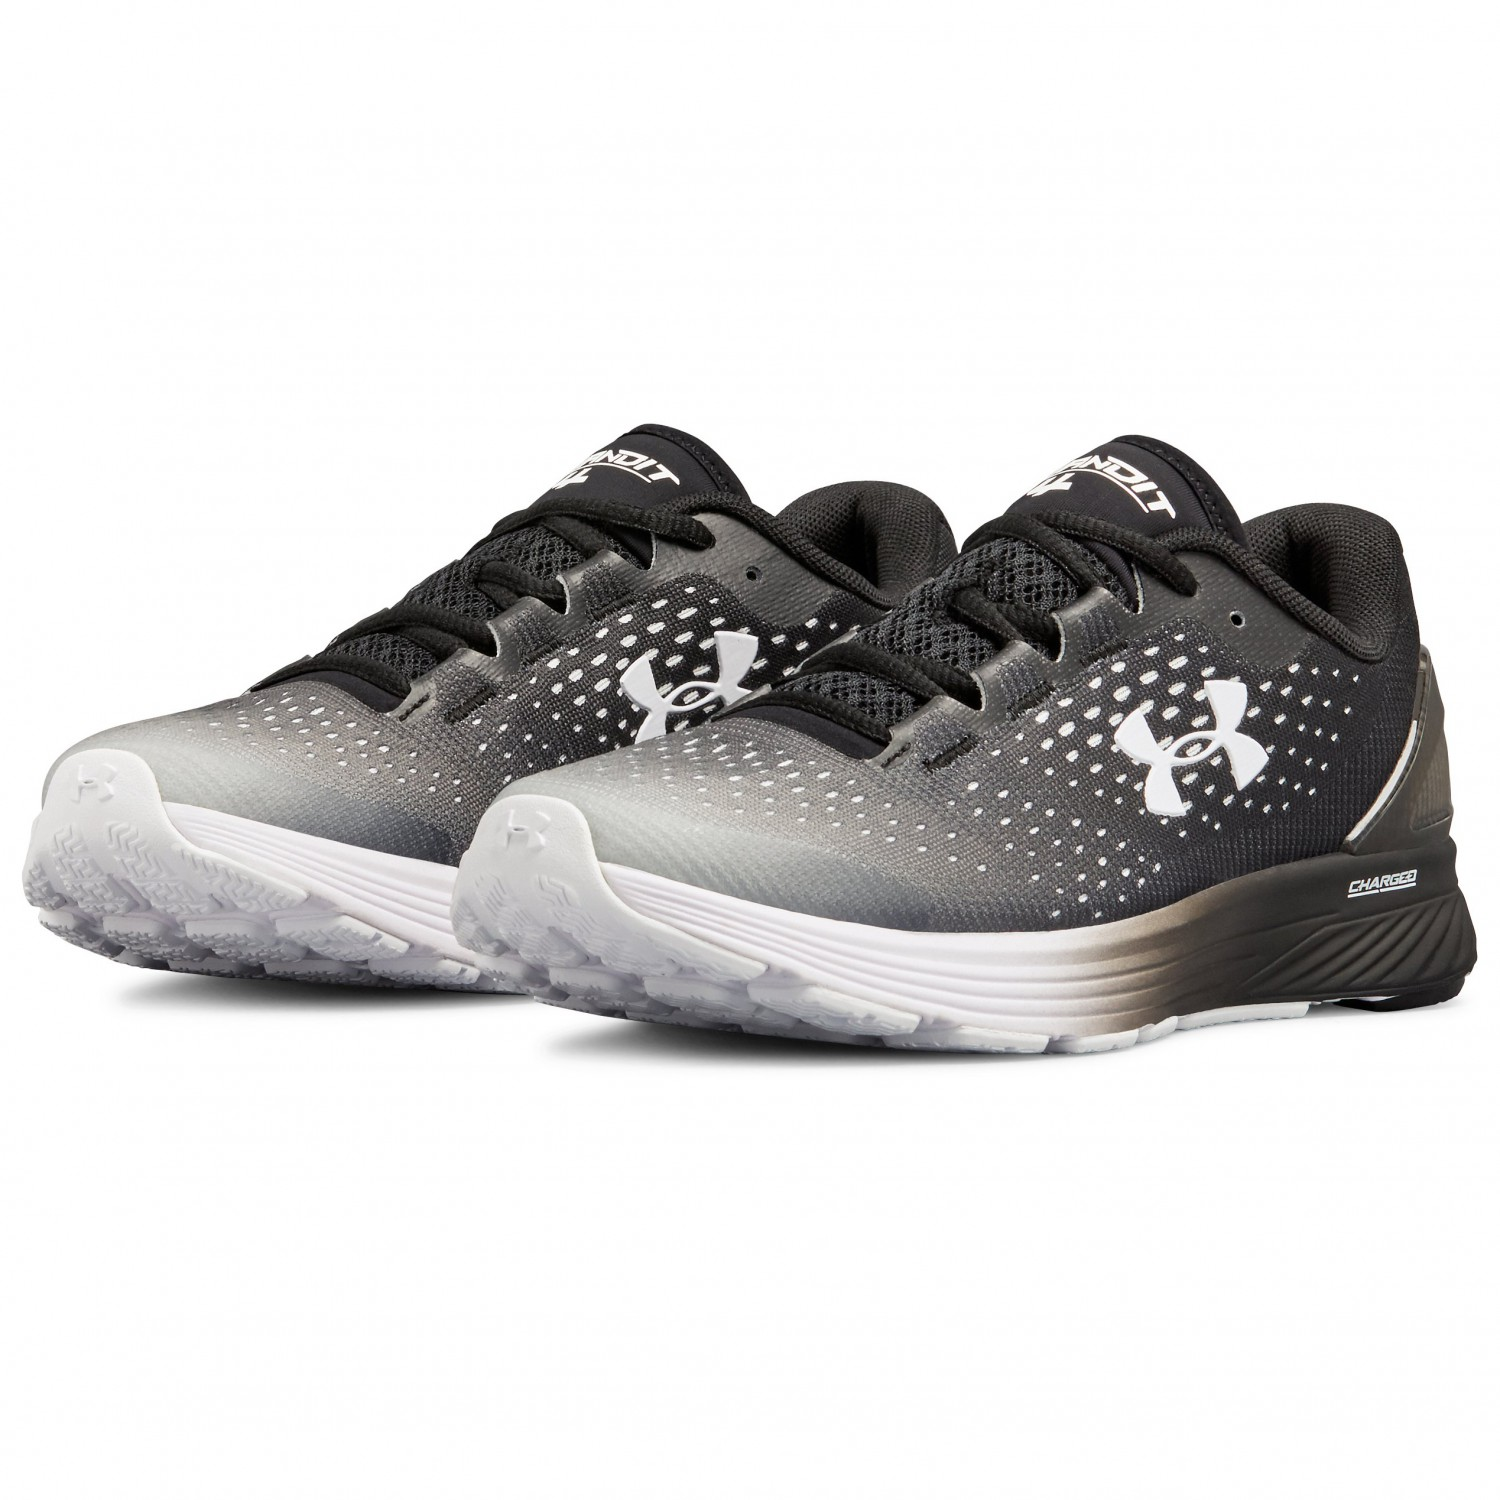 Under Armour - Women s UA Charged Bandit 4 - Running shoes ba9670e9b